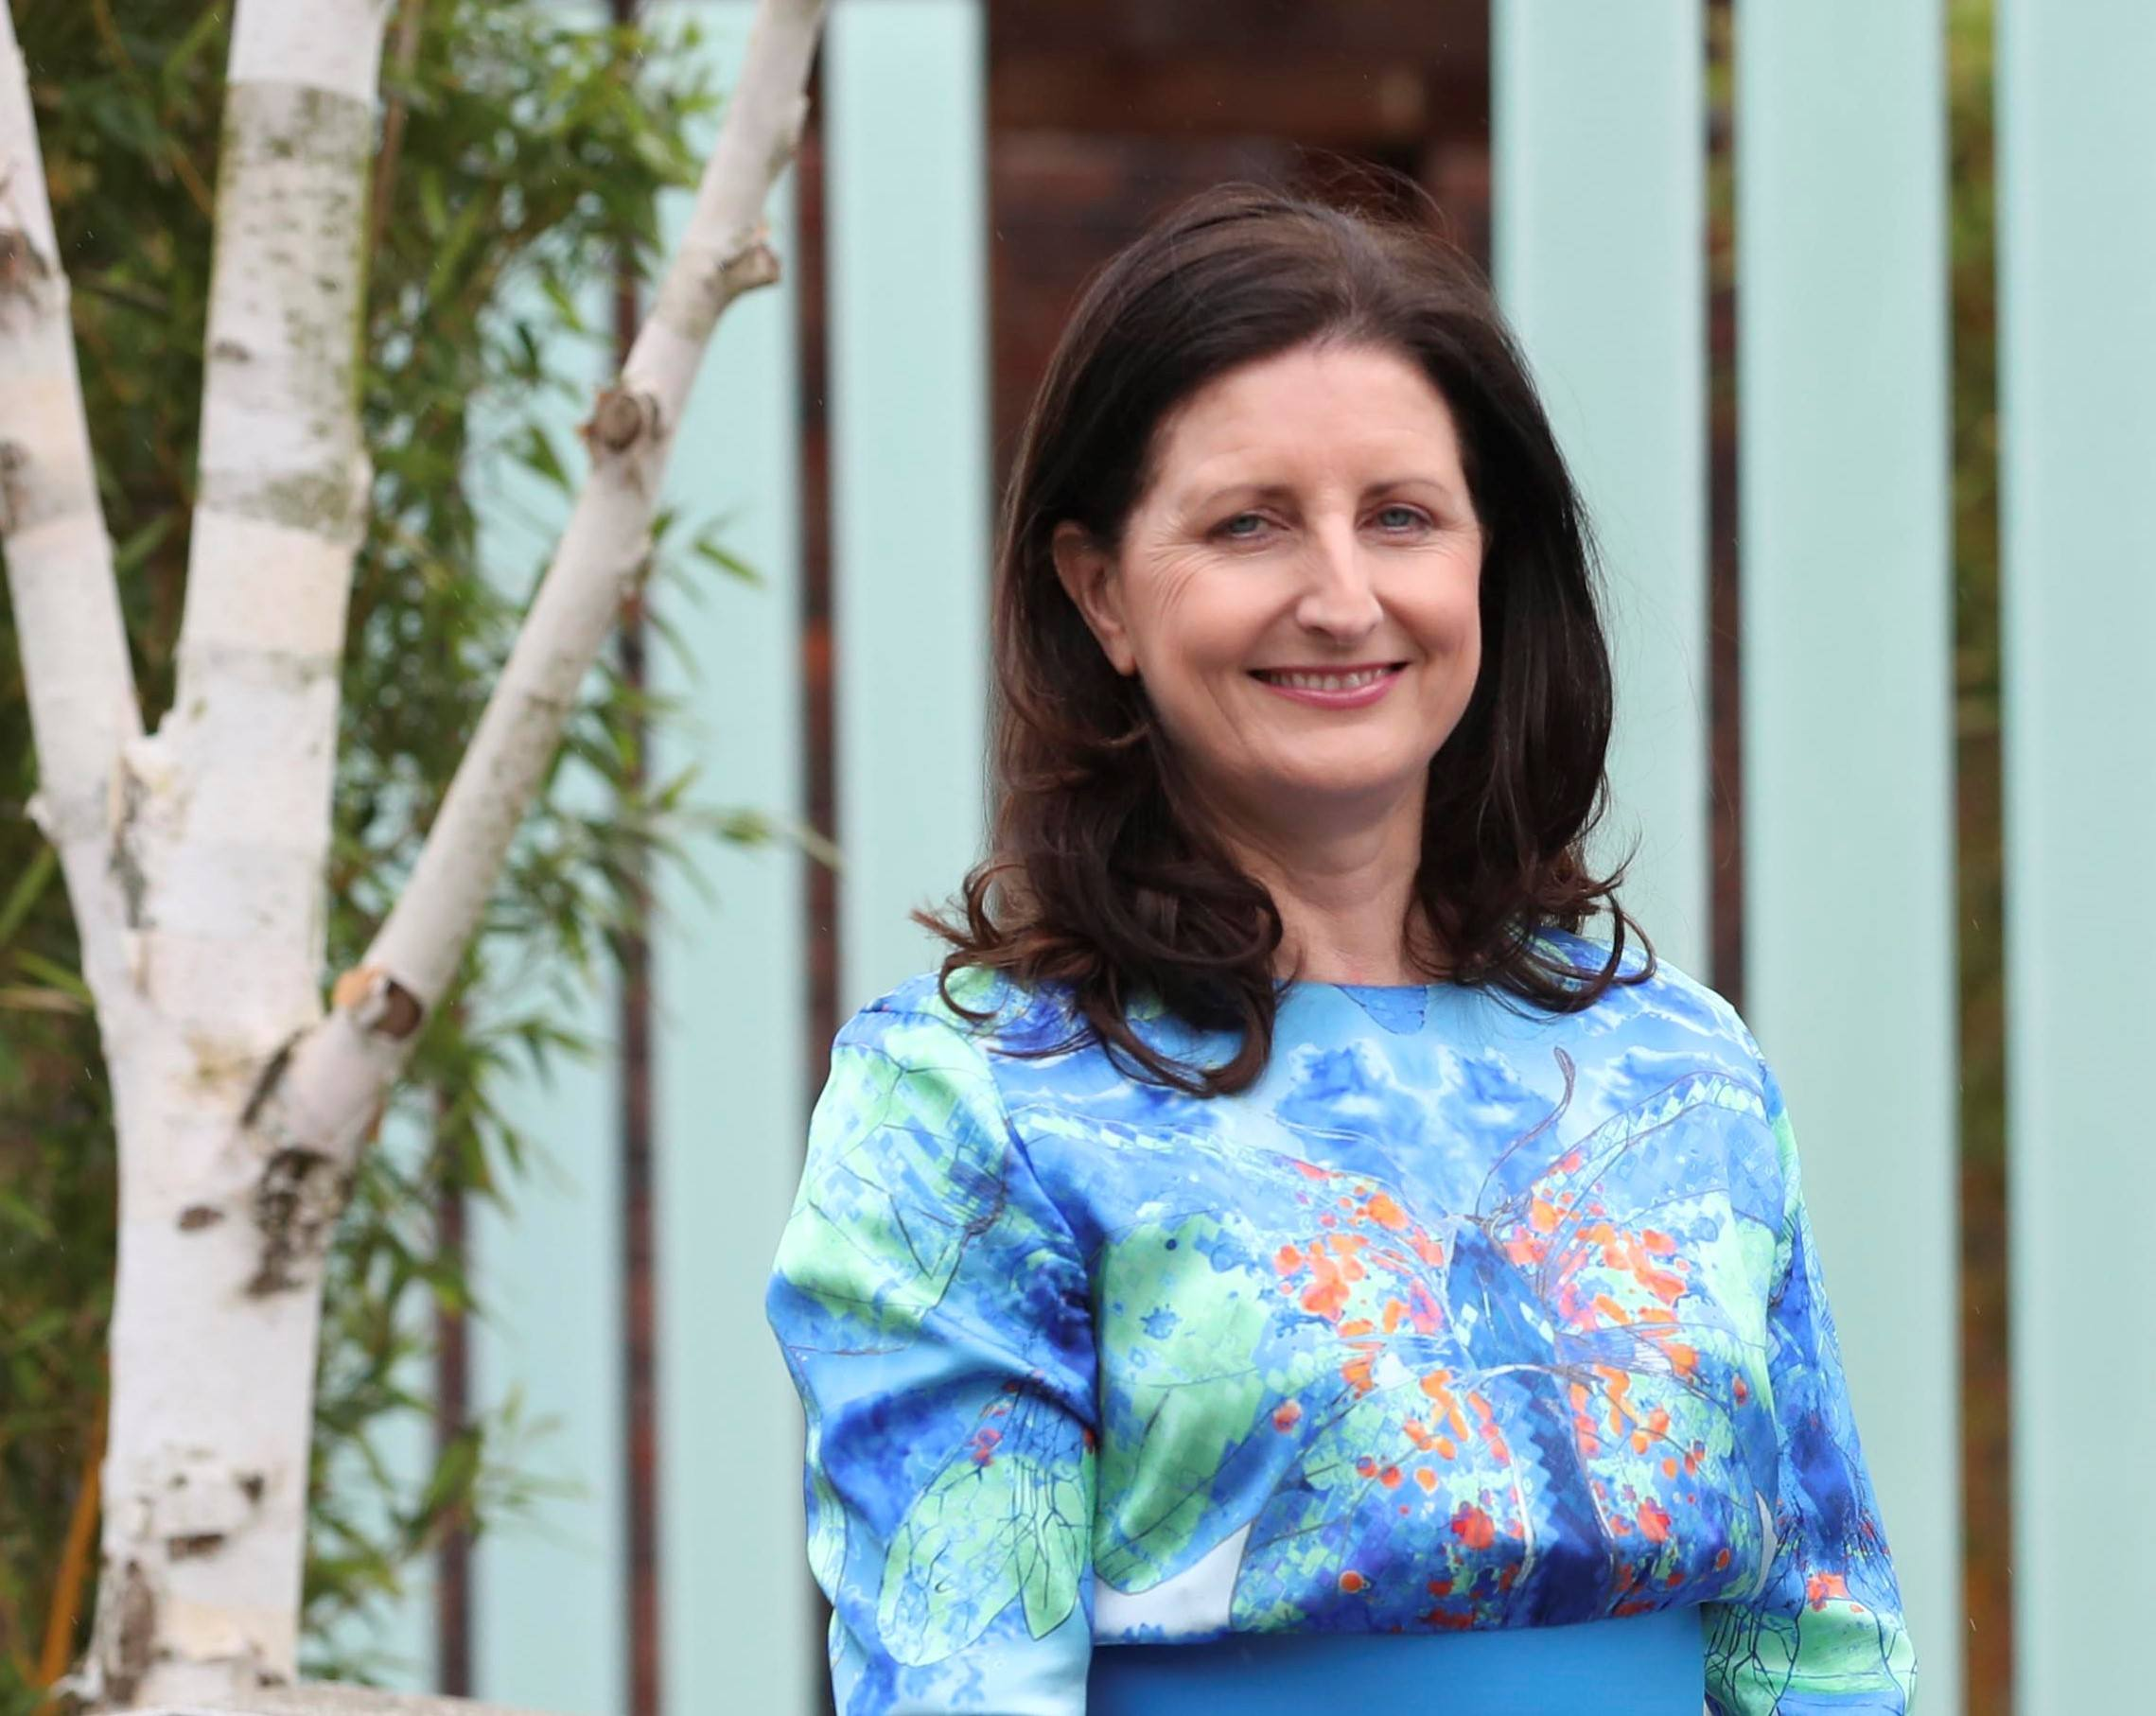 'Digital transformation has brought huge challenges for our sector'